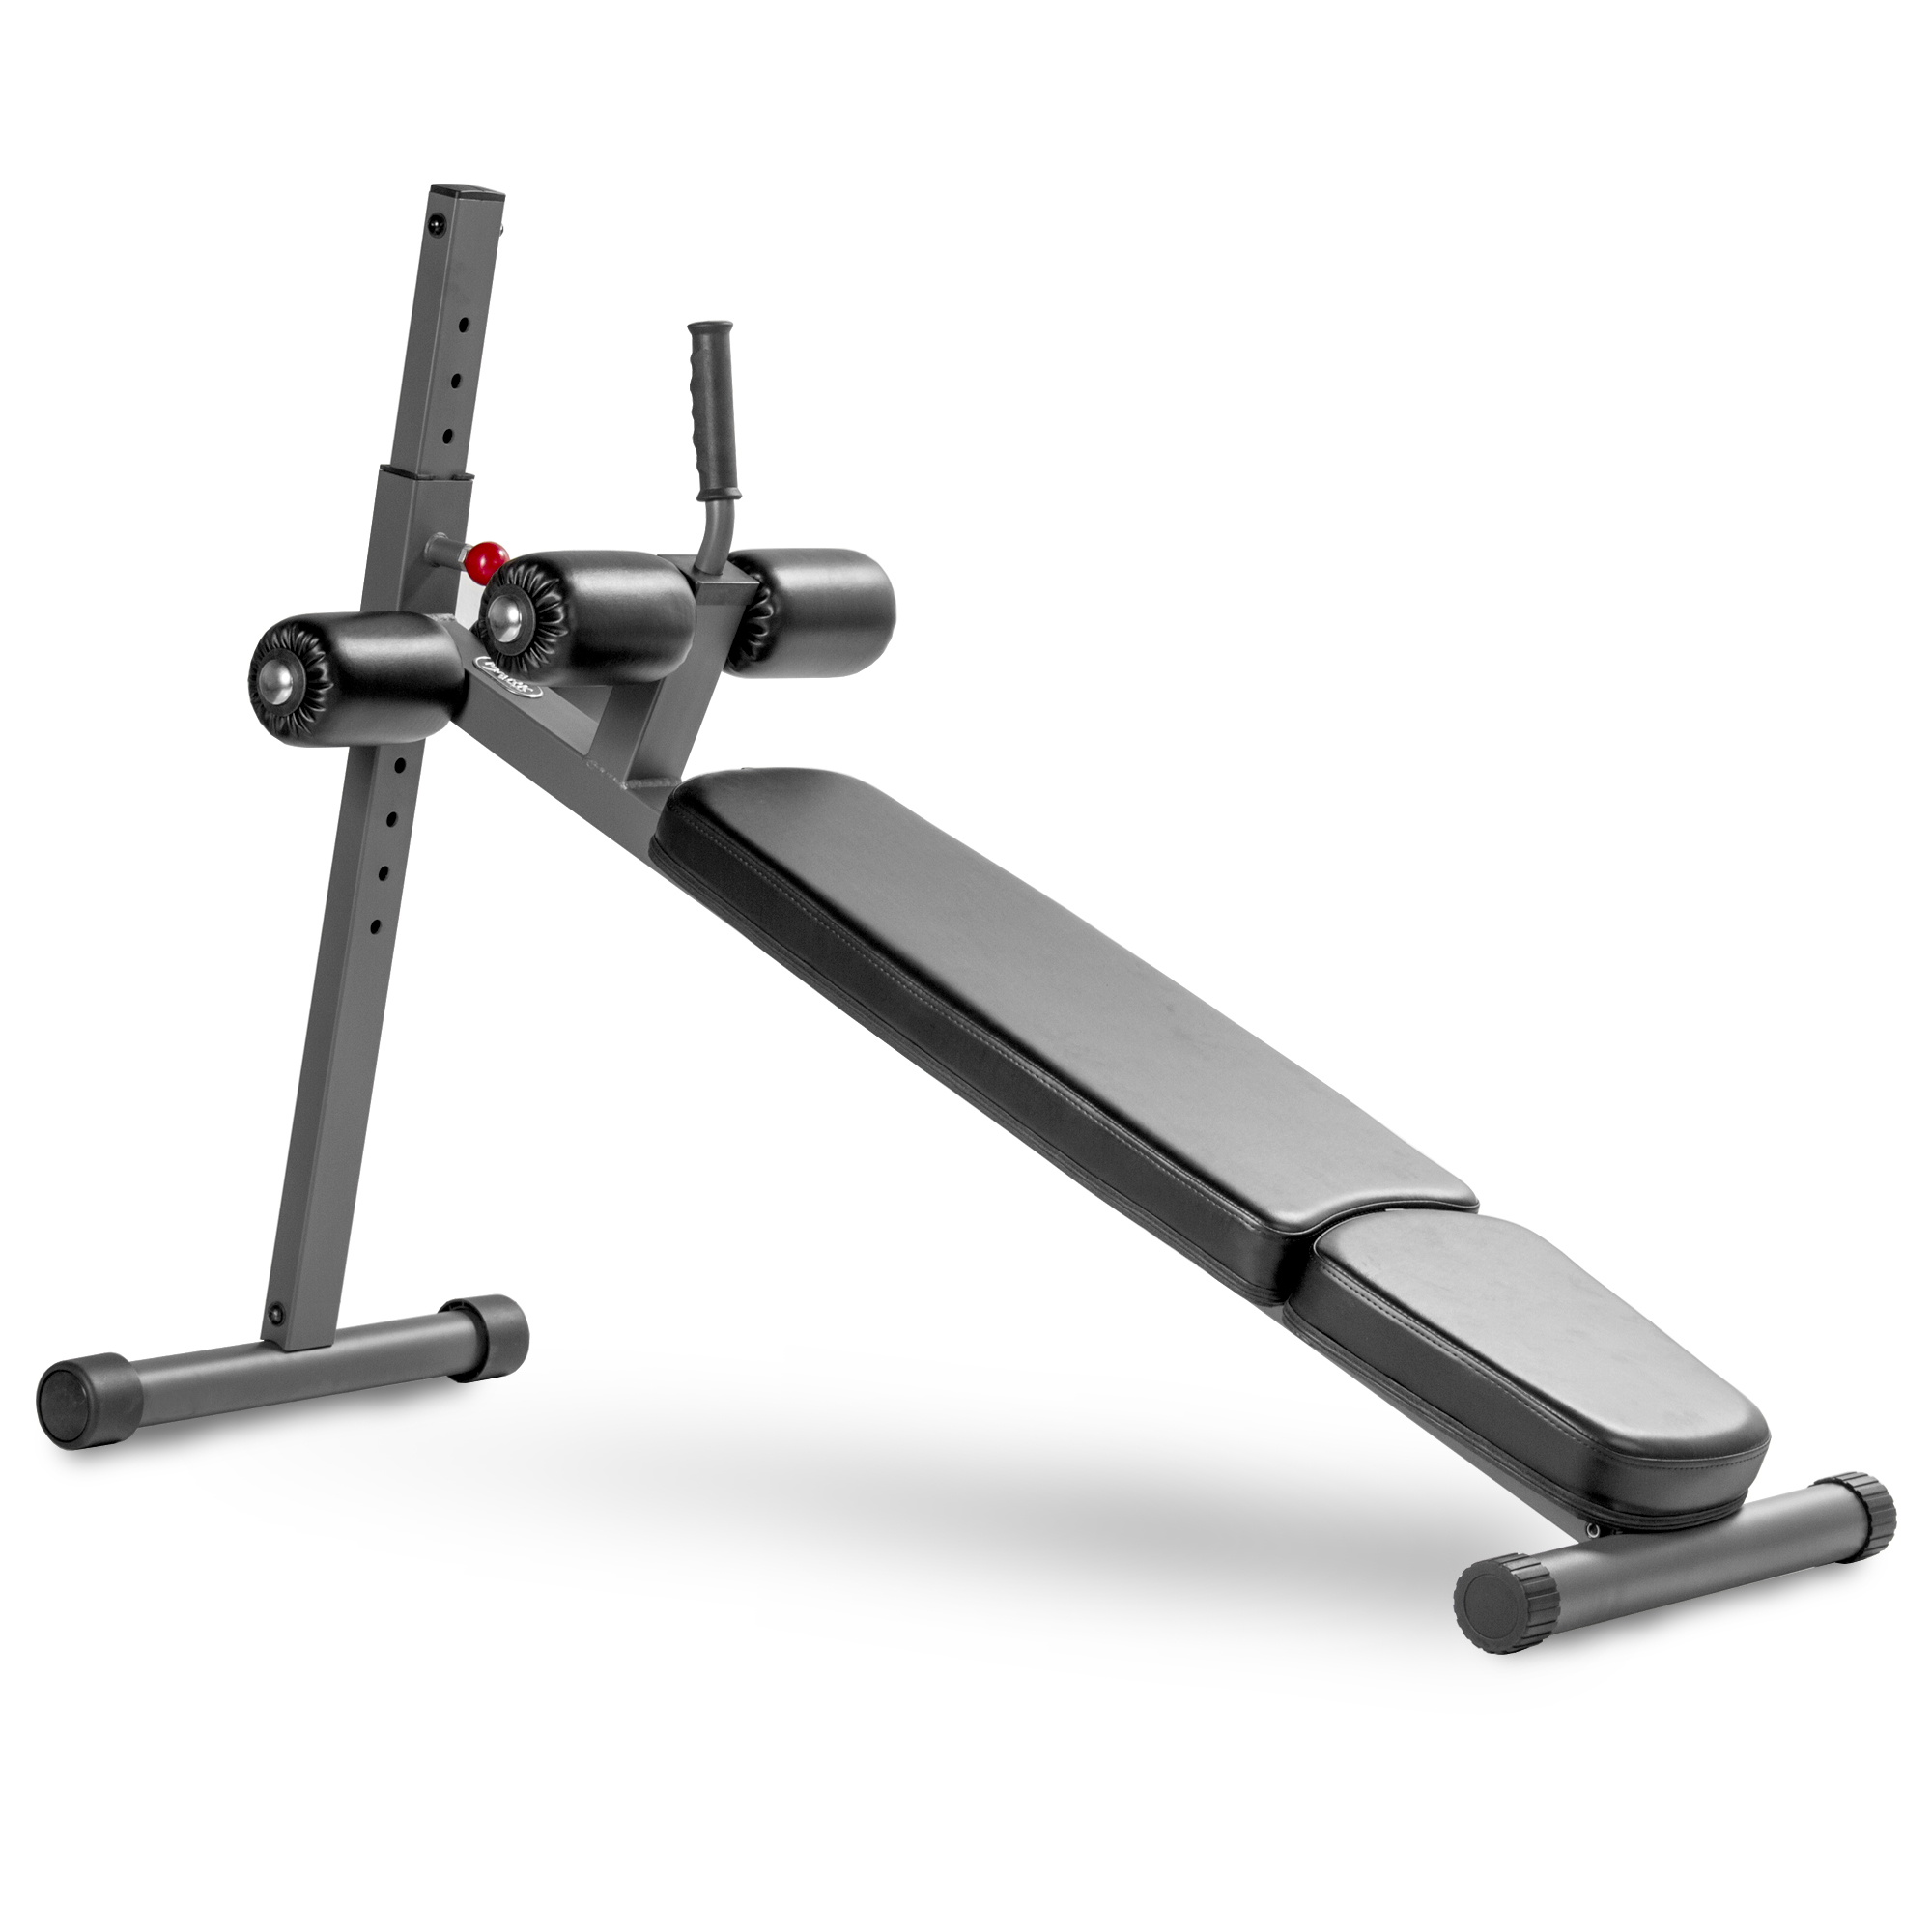 XMark Fitness Adjustable Ab Bench 12 Position Adjustment Duracraft Duraguard, As Shown